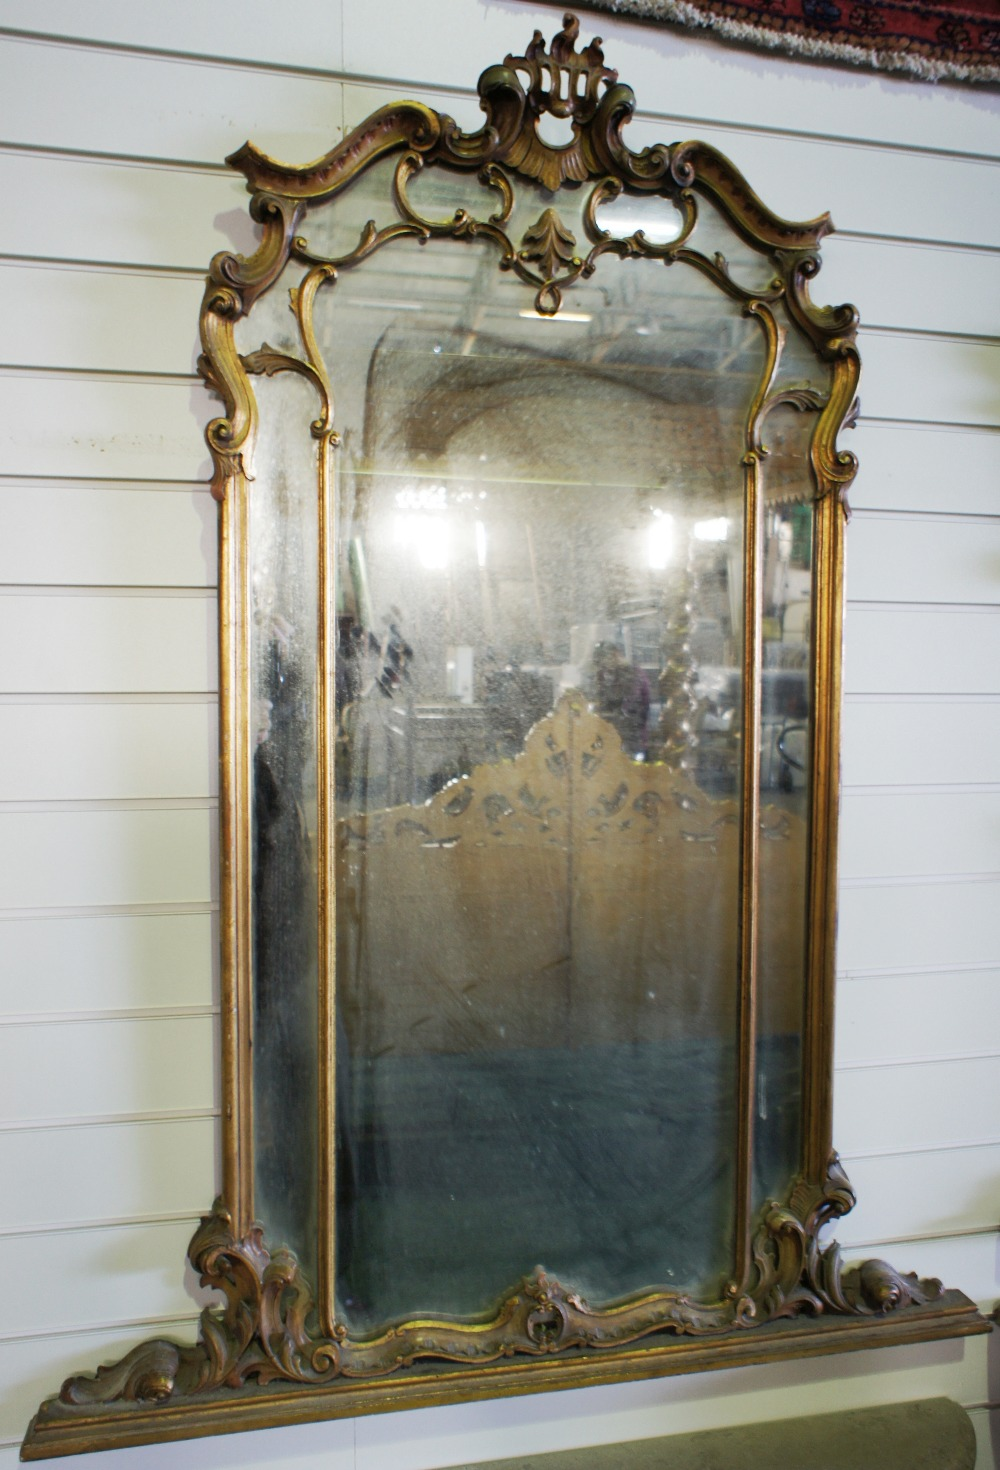 Lot 621 - NV- A large decorative wall mirror with a gilt work frame of foliate and scroll work decoration